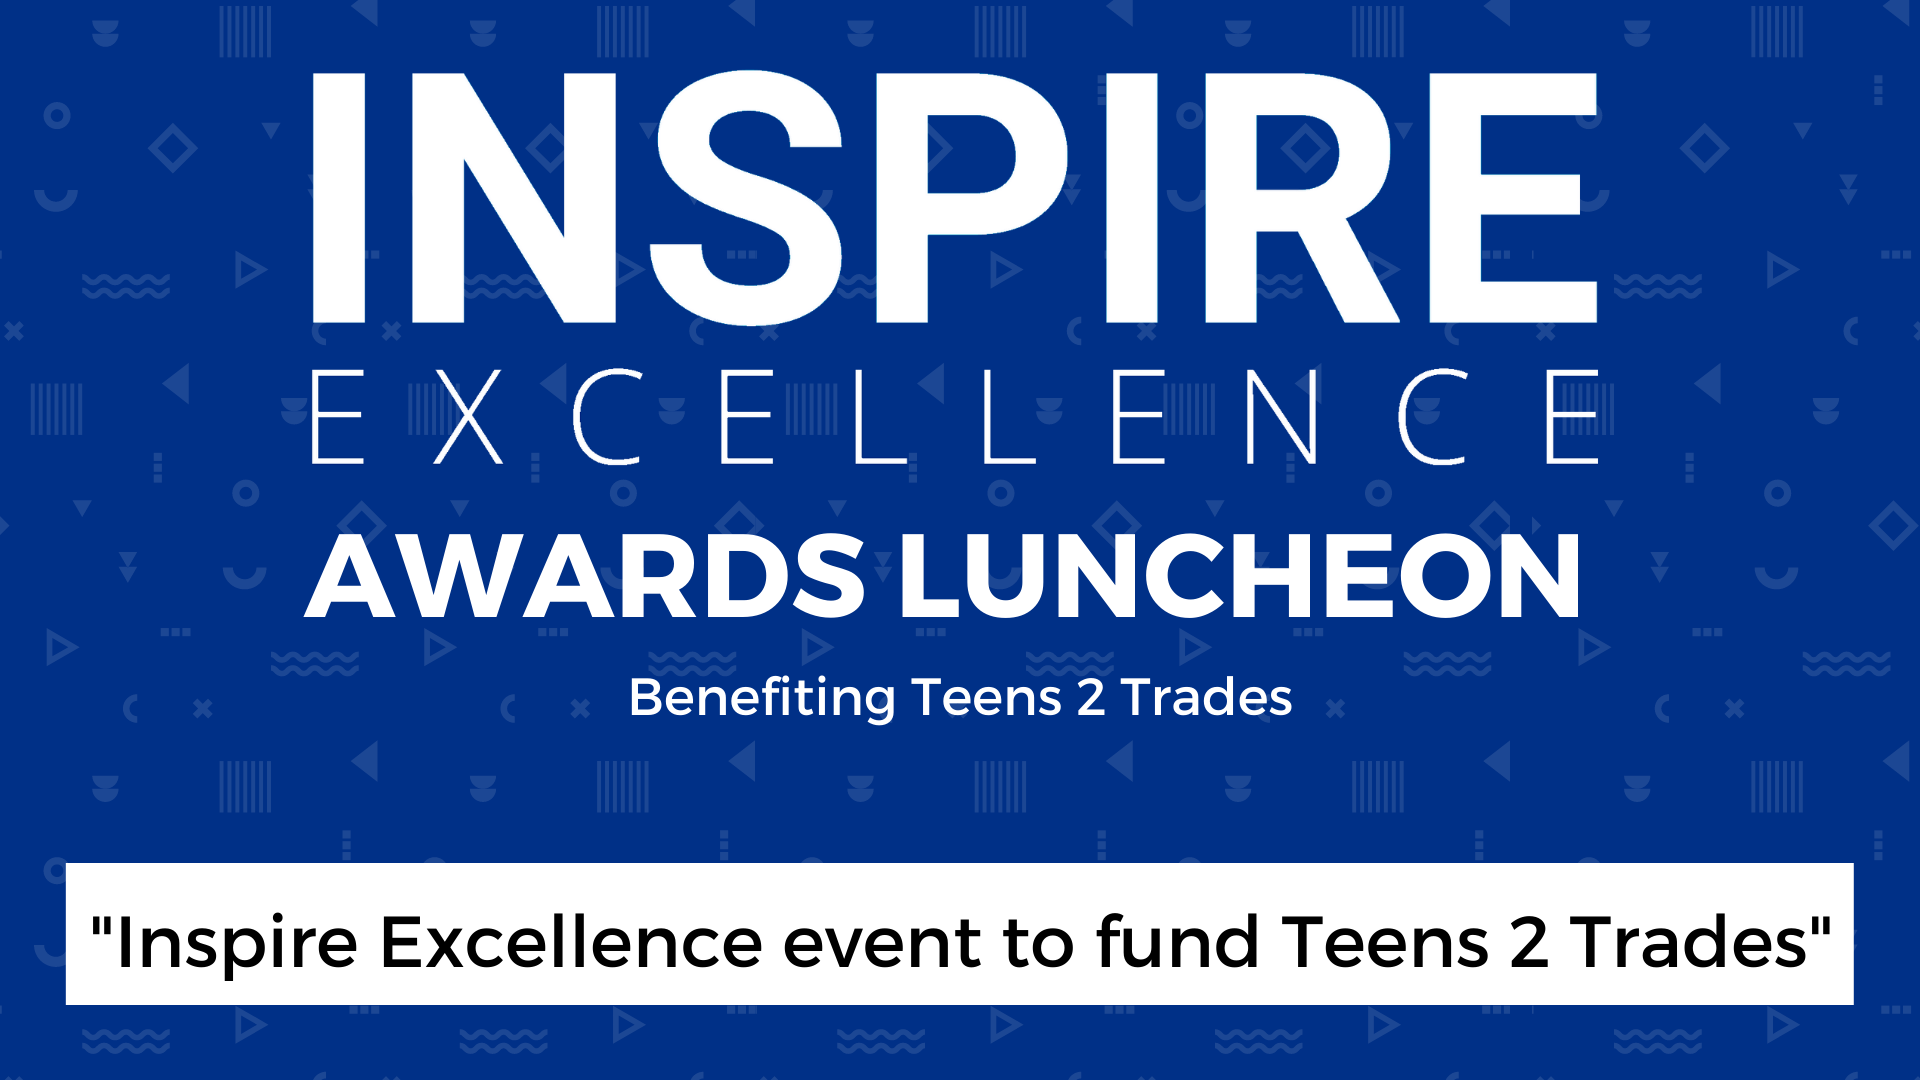 Inspire Excellence event to fund Teens 2 Trades